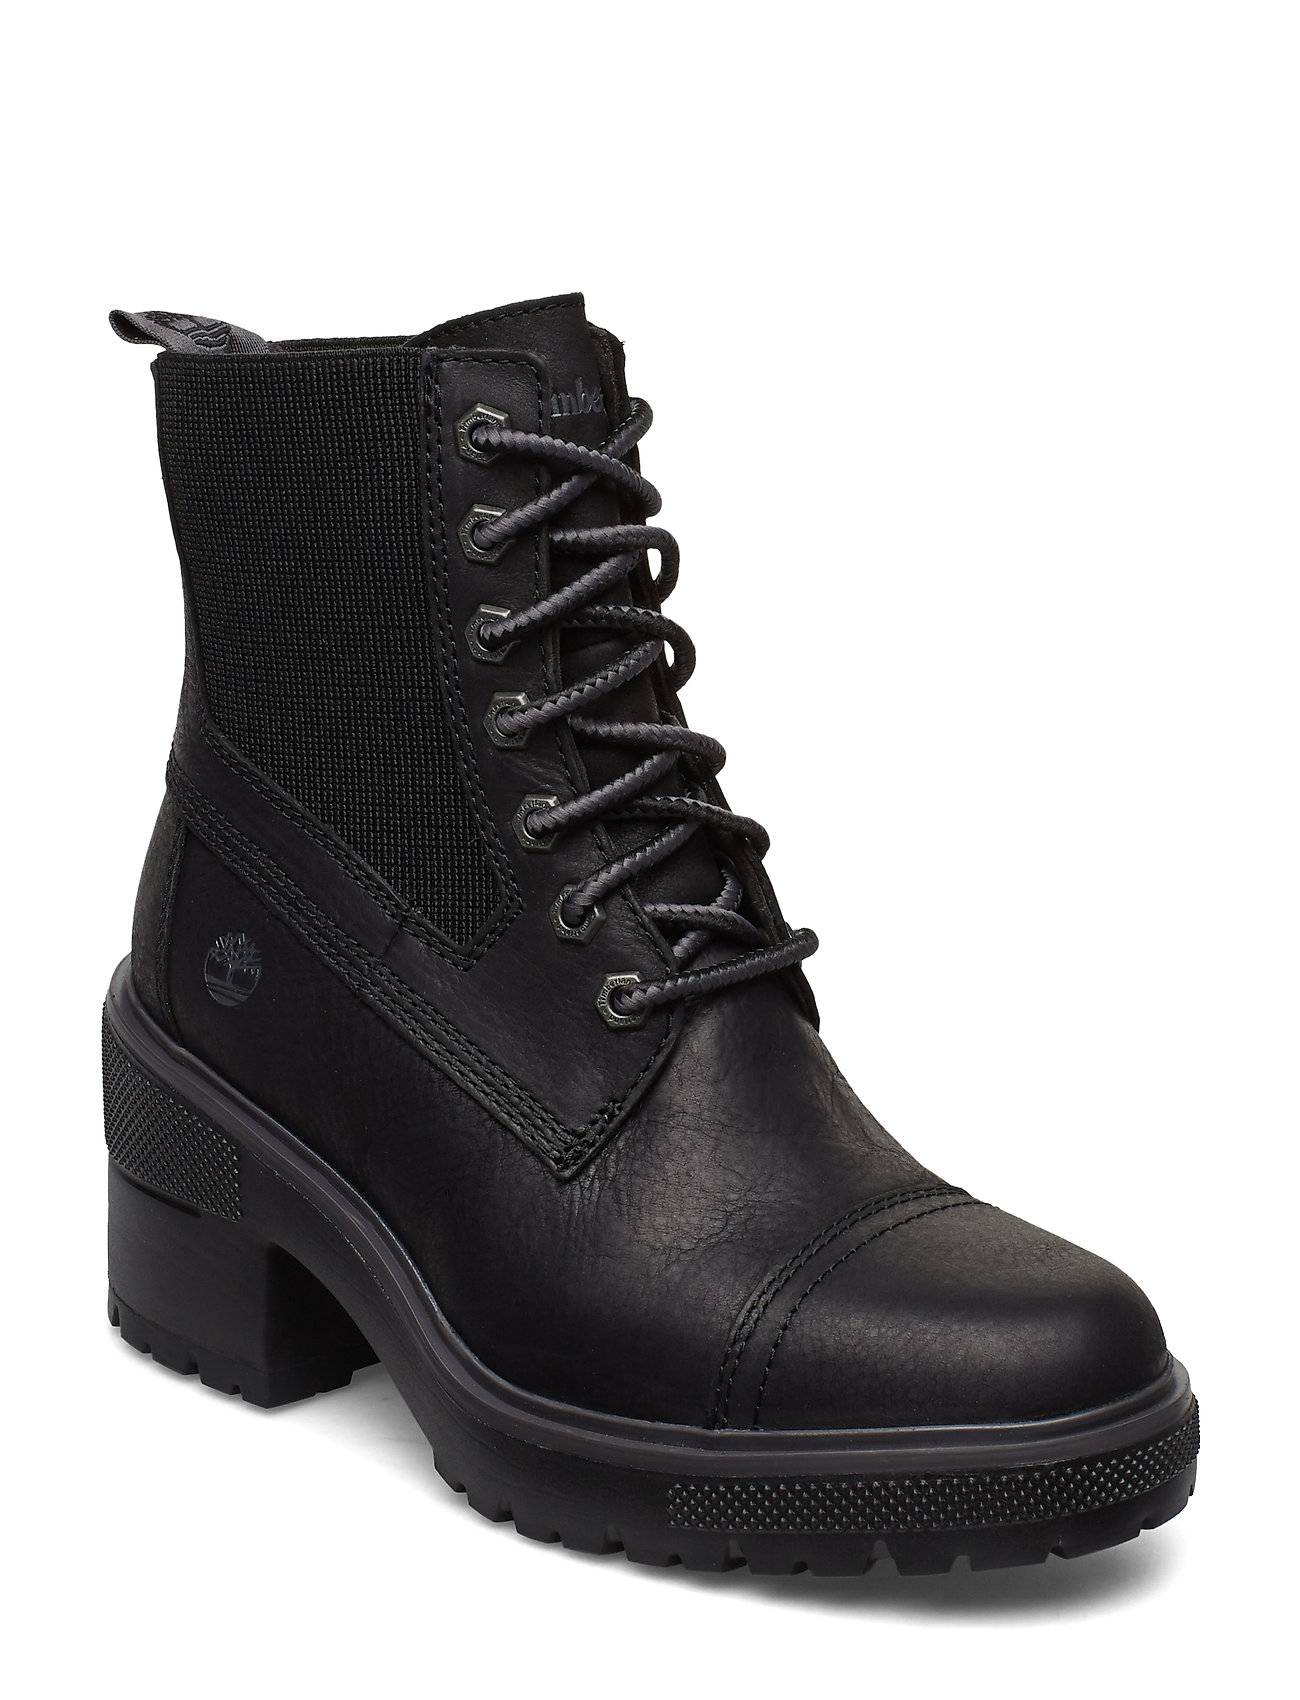 Timberland Silver Blossom Mid Bootie Shoes Boots Ankle Boots Ankle Boots With Heel Musta